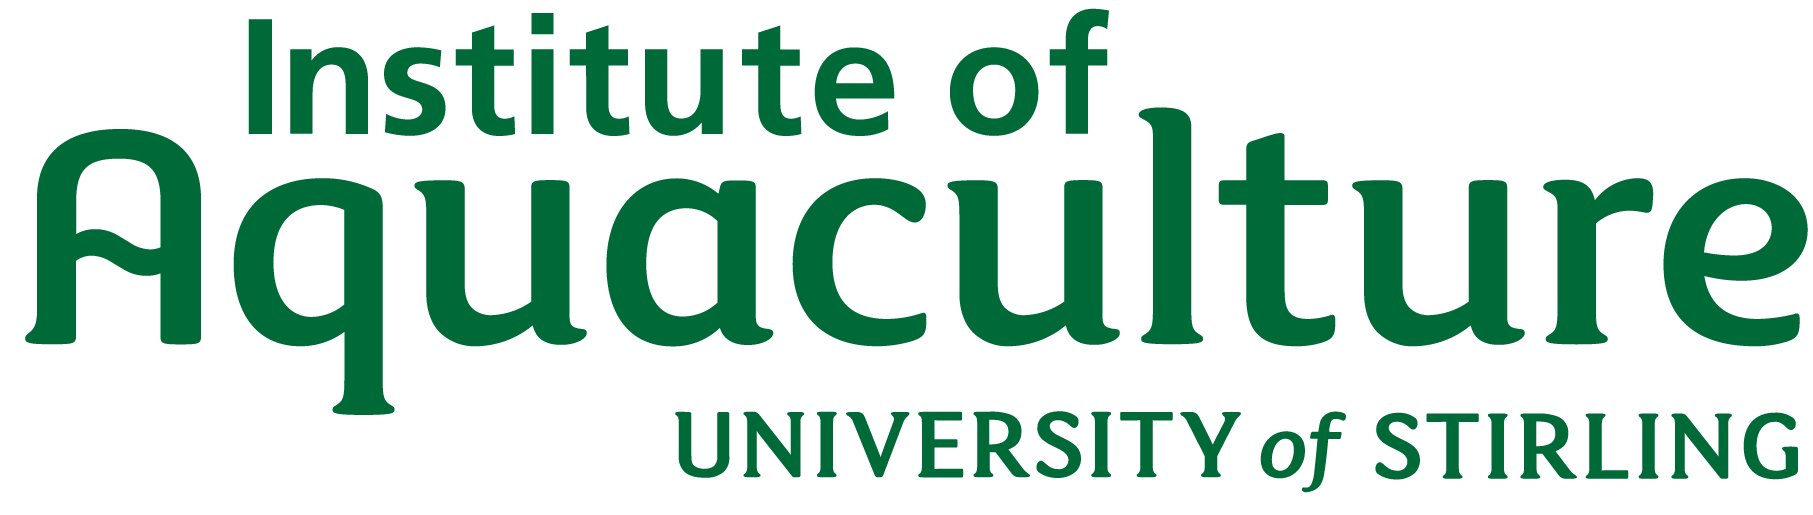 Institute of Aquaculture | About | University of Stirling